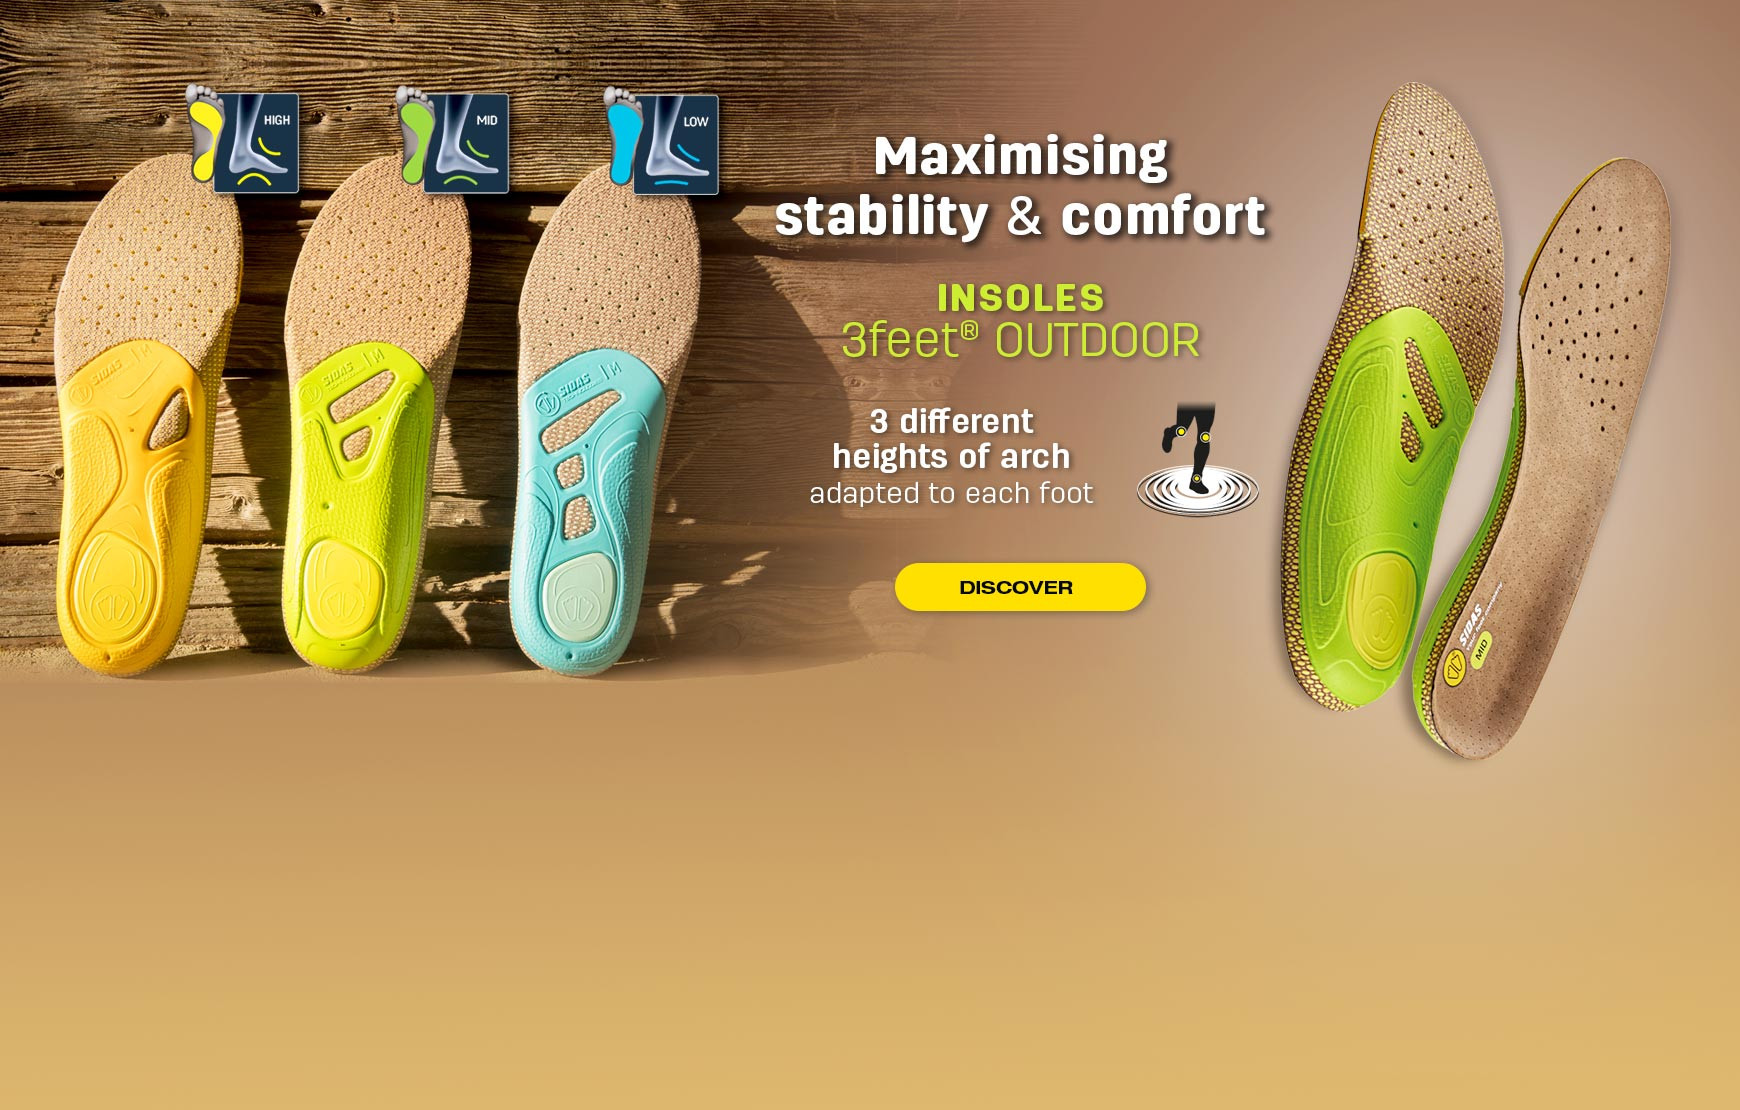 Discover our insoles 3Feet® Outdoor, made for hiking